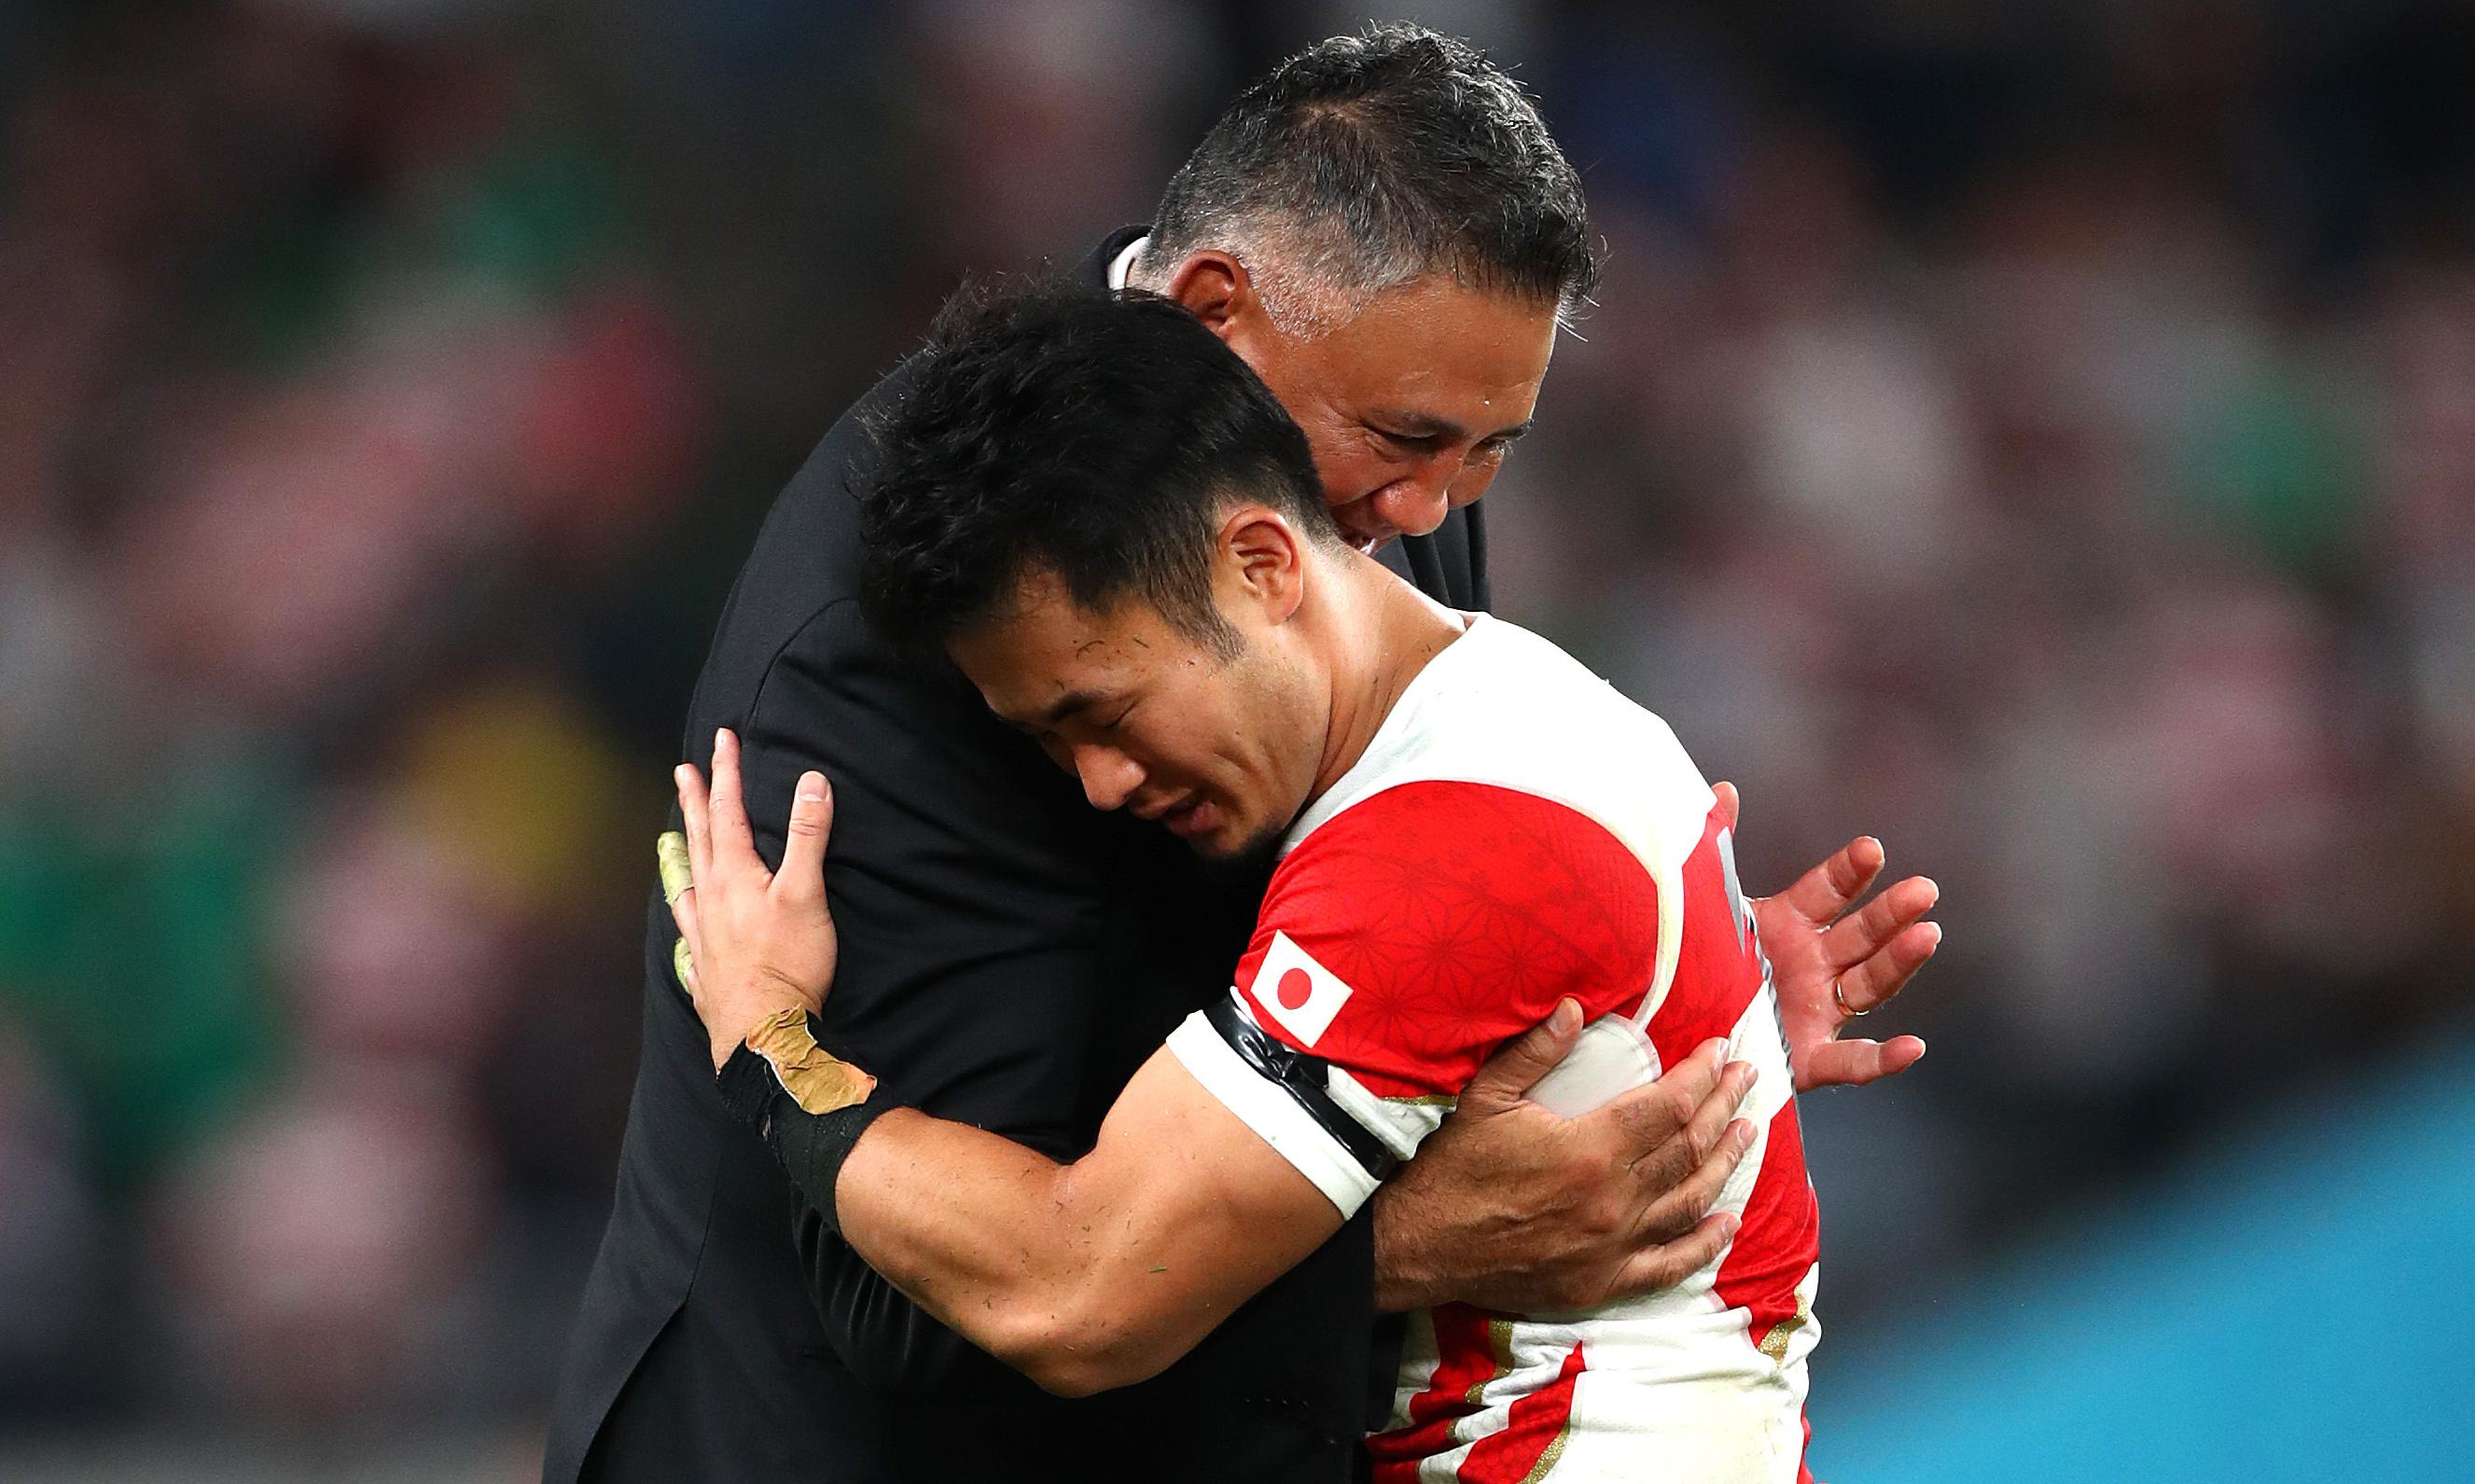 Japan's never-say-die spirit needs nurturing after Rugby World Cup